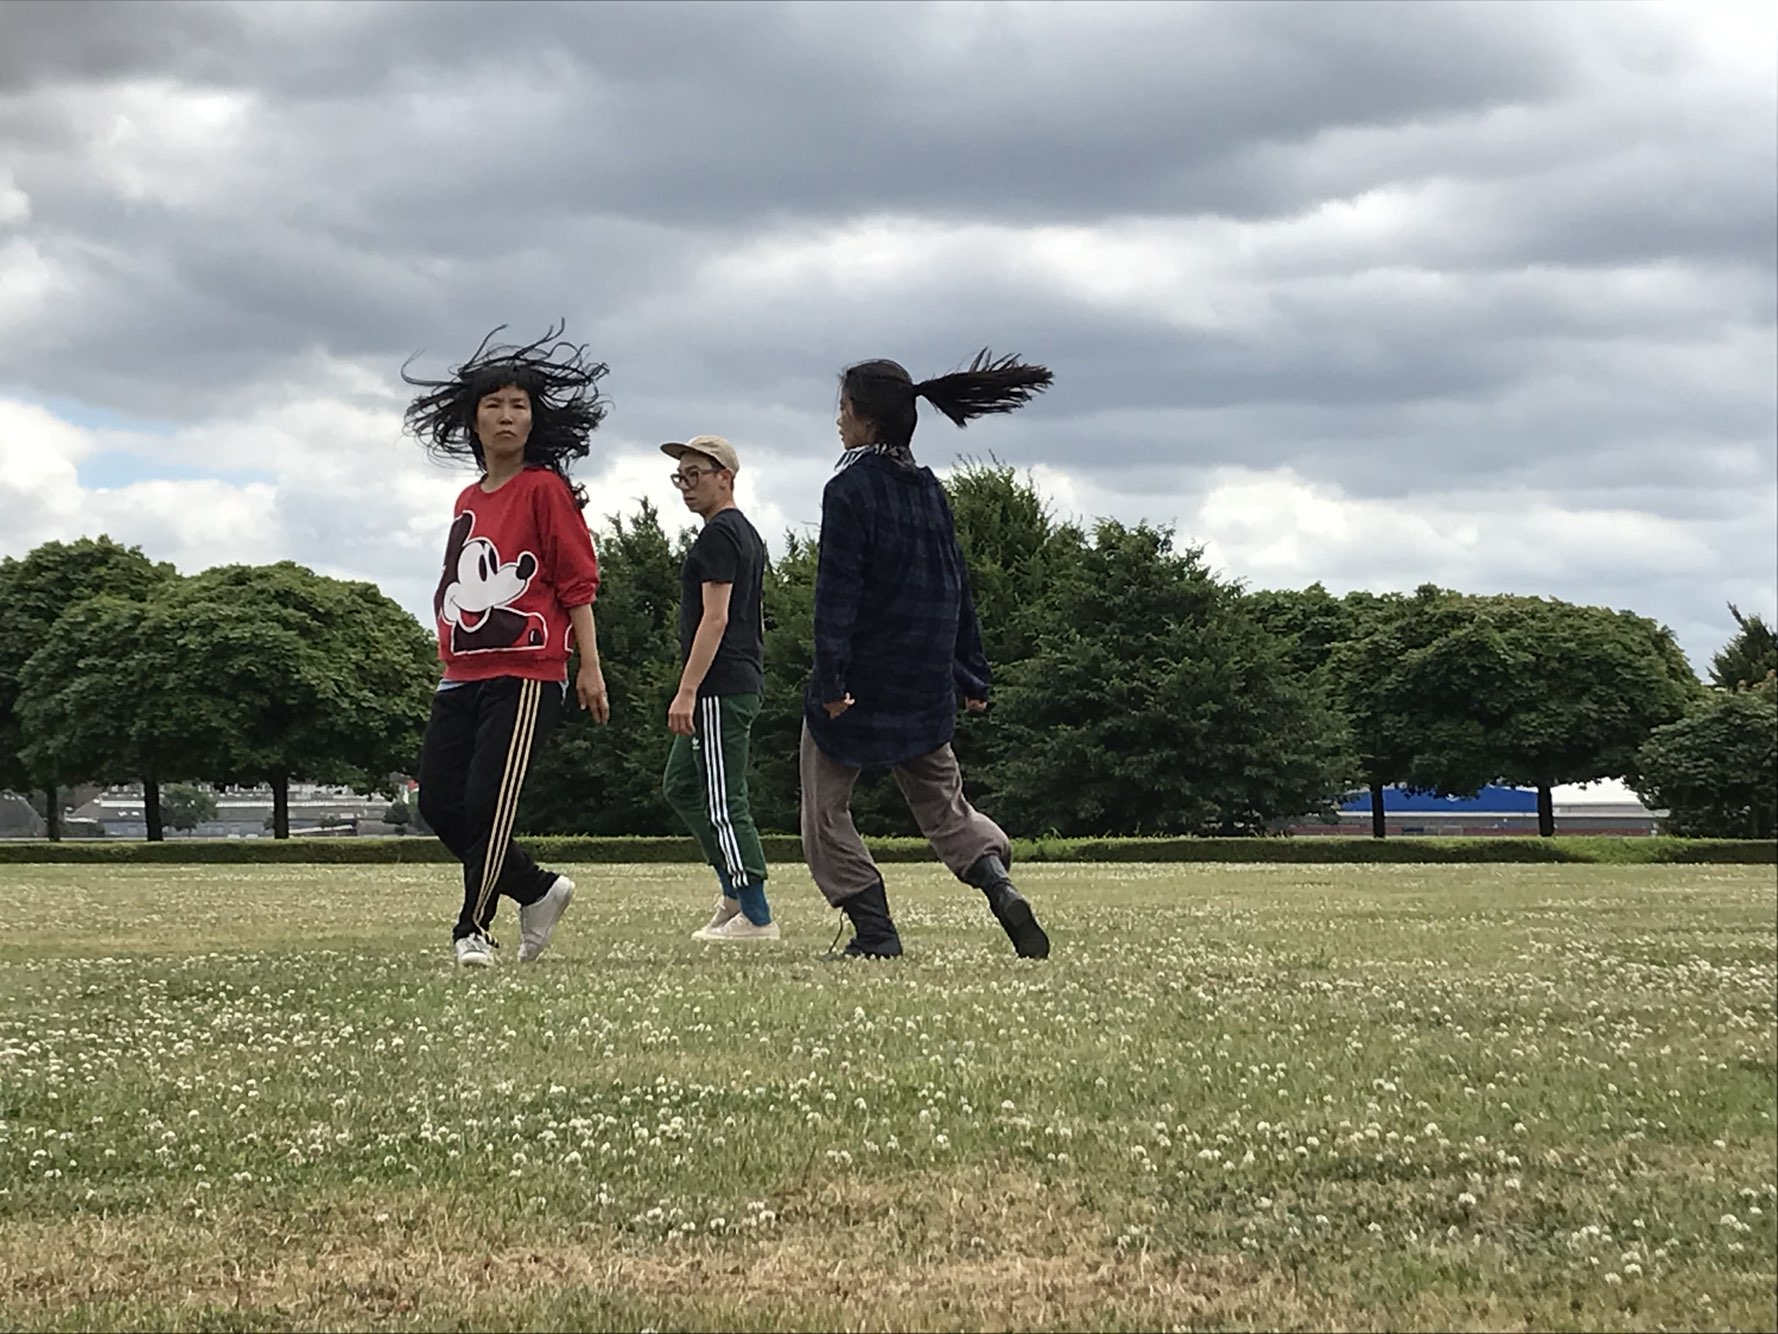 Human Wall research in Roehampton University (July 25th ) with Katie Boag, Haeyeon Lim, francesco migliaccio, Jinhan Choi)